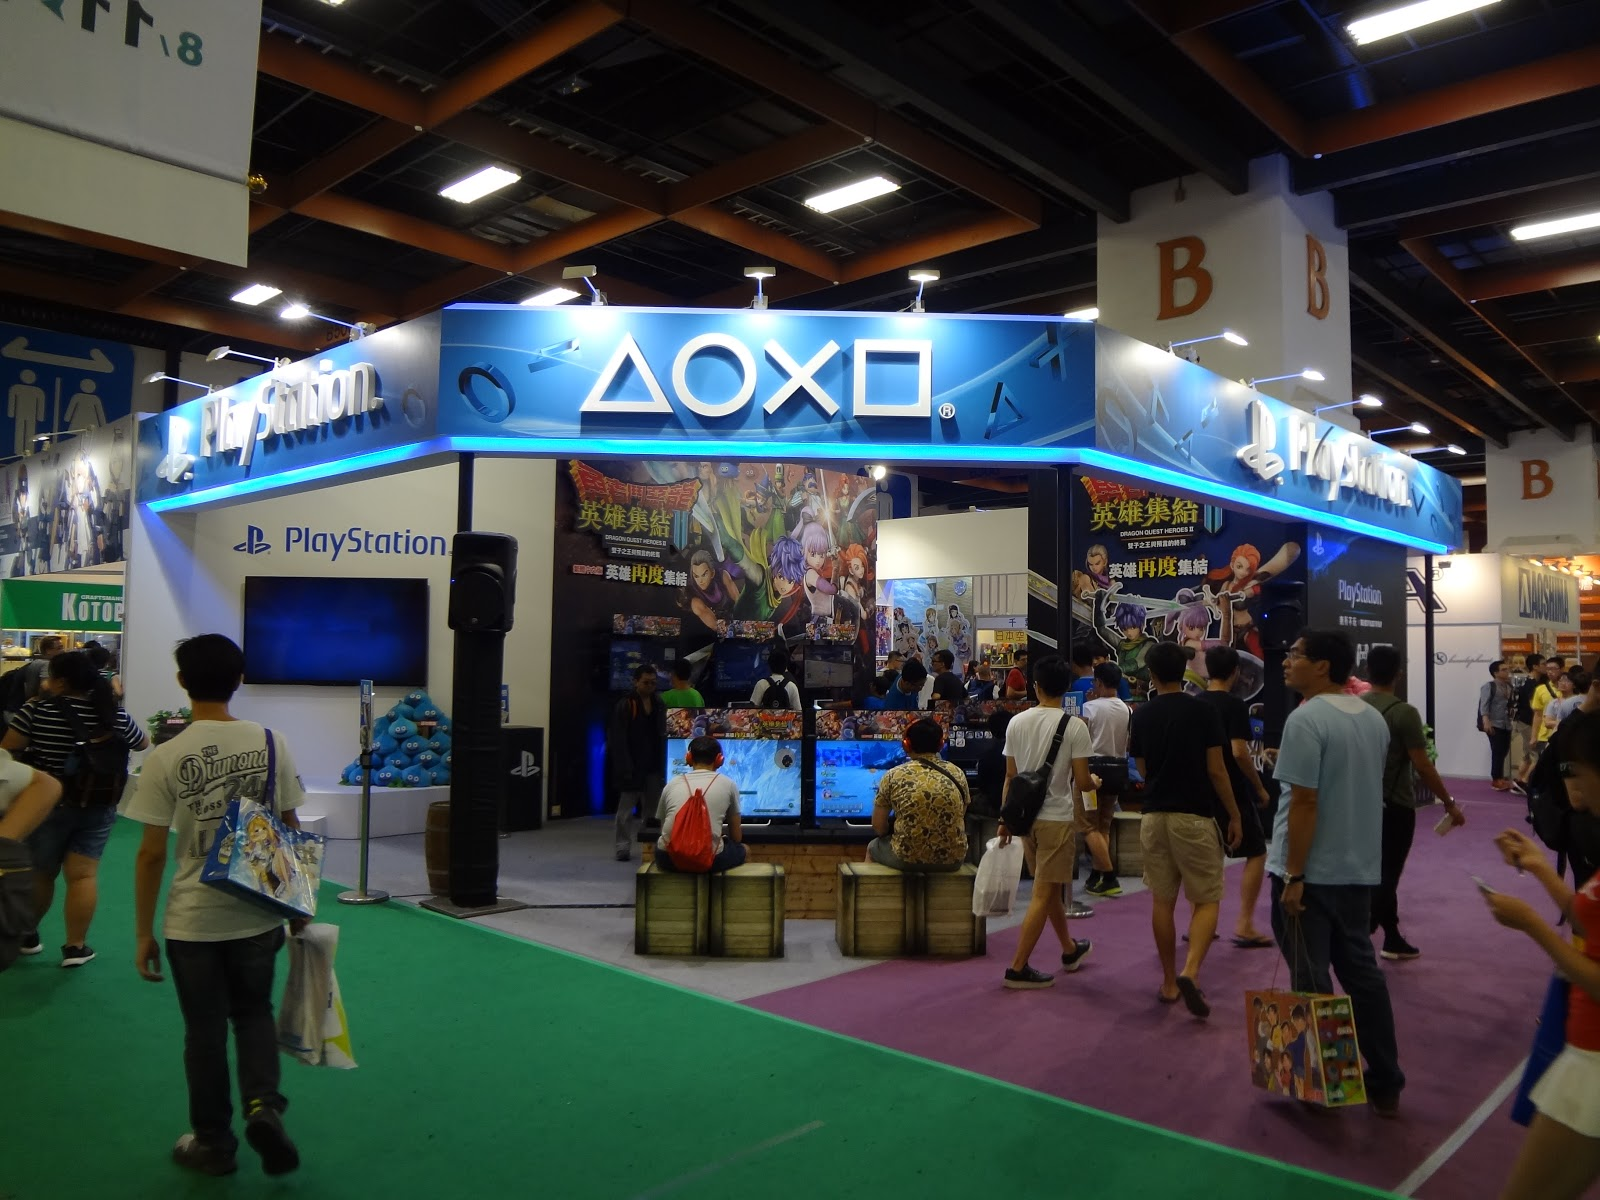 Booth design influences audience engagement.